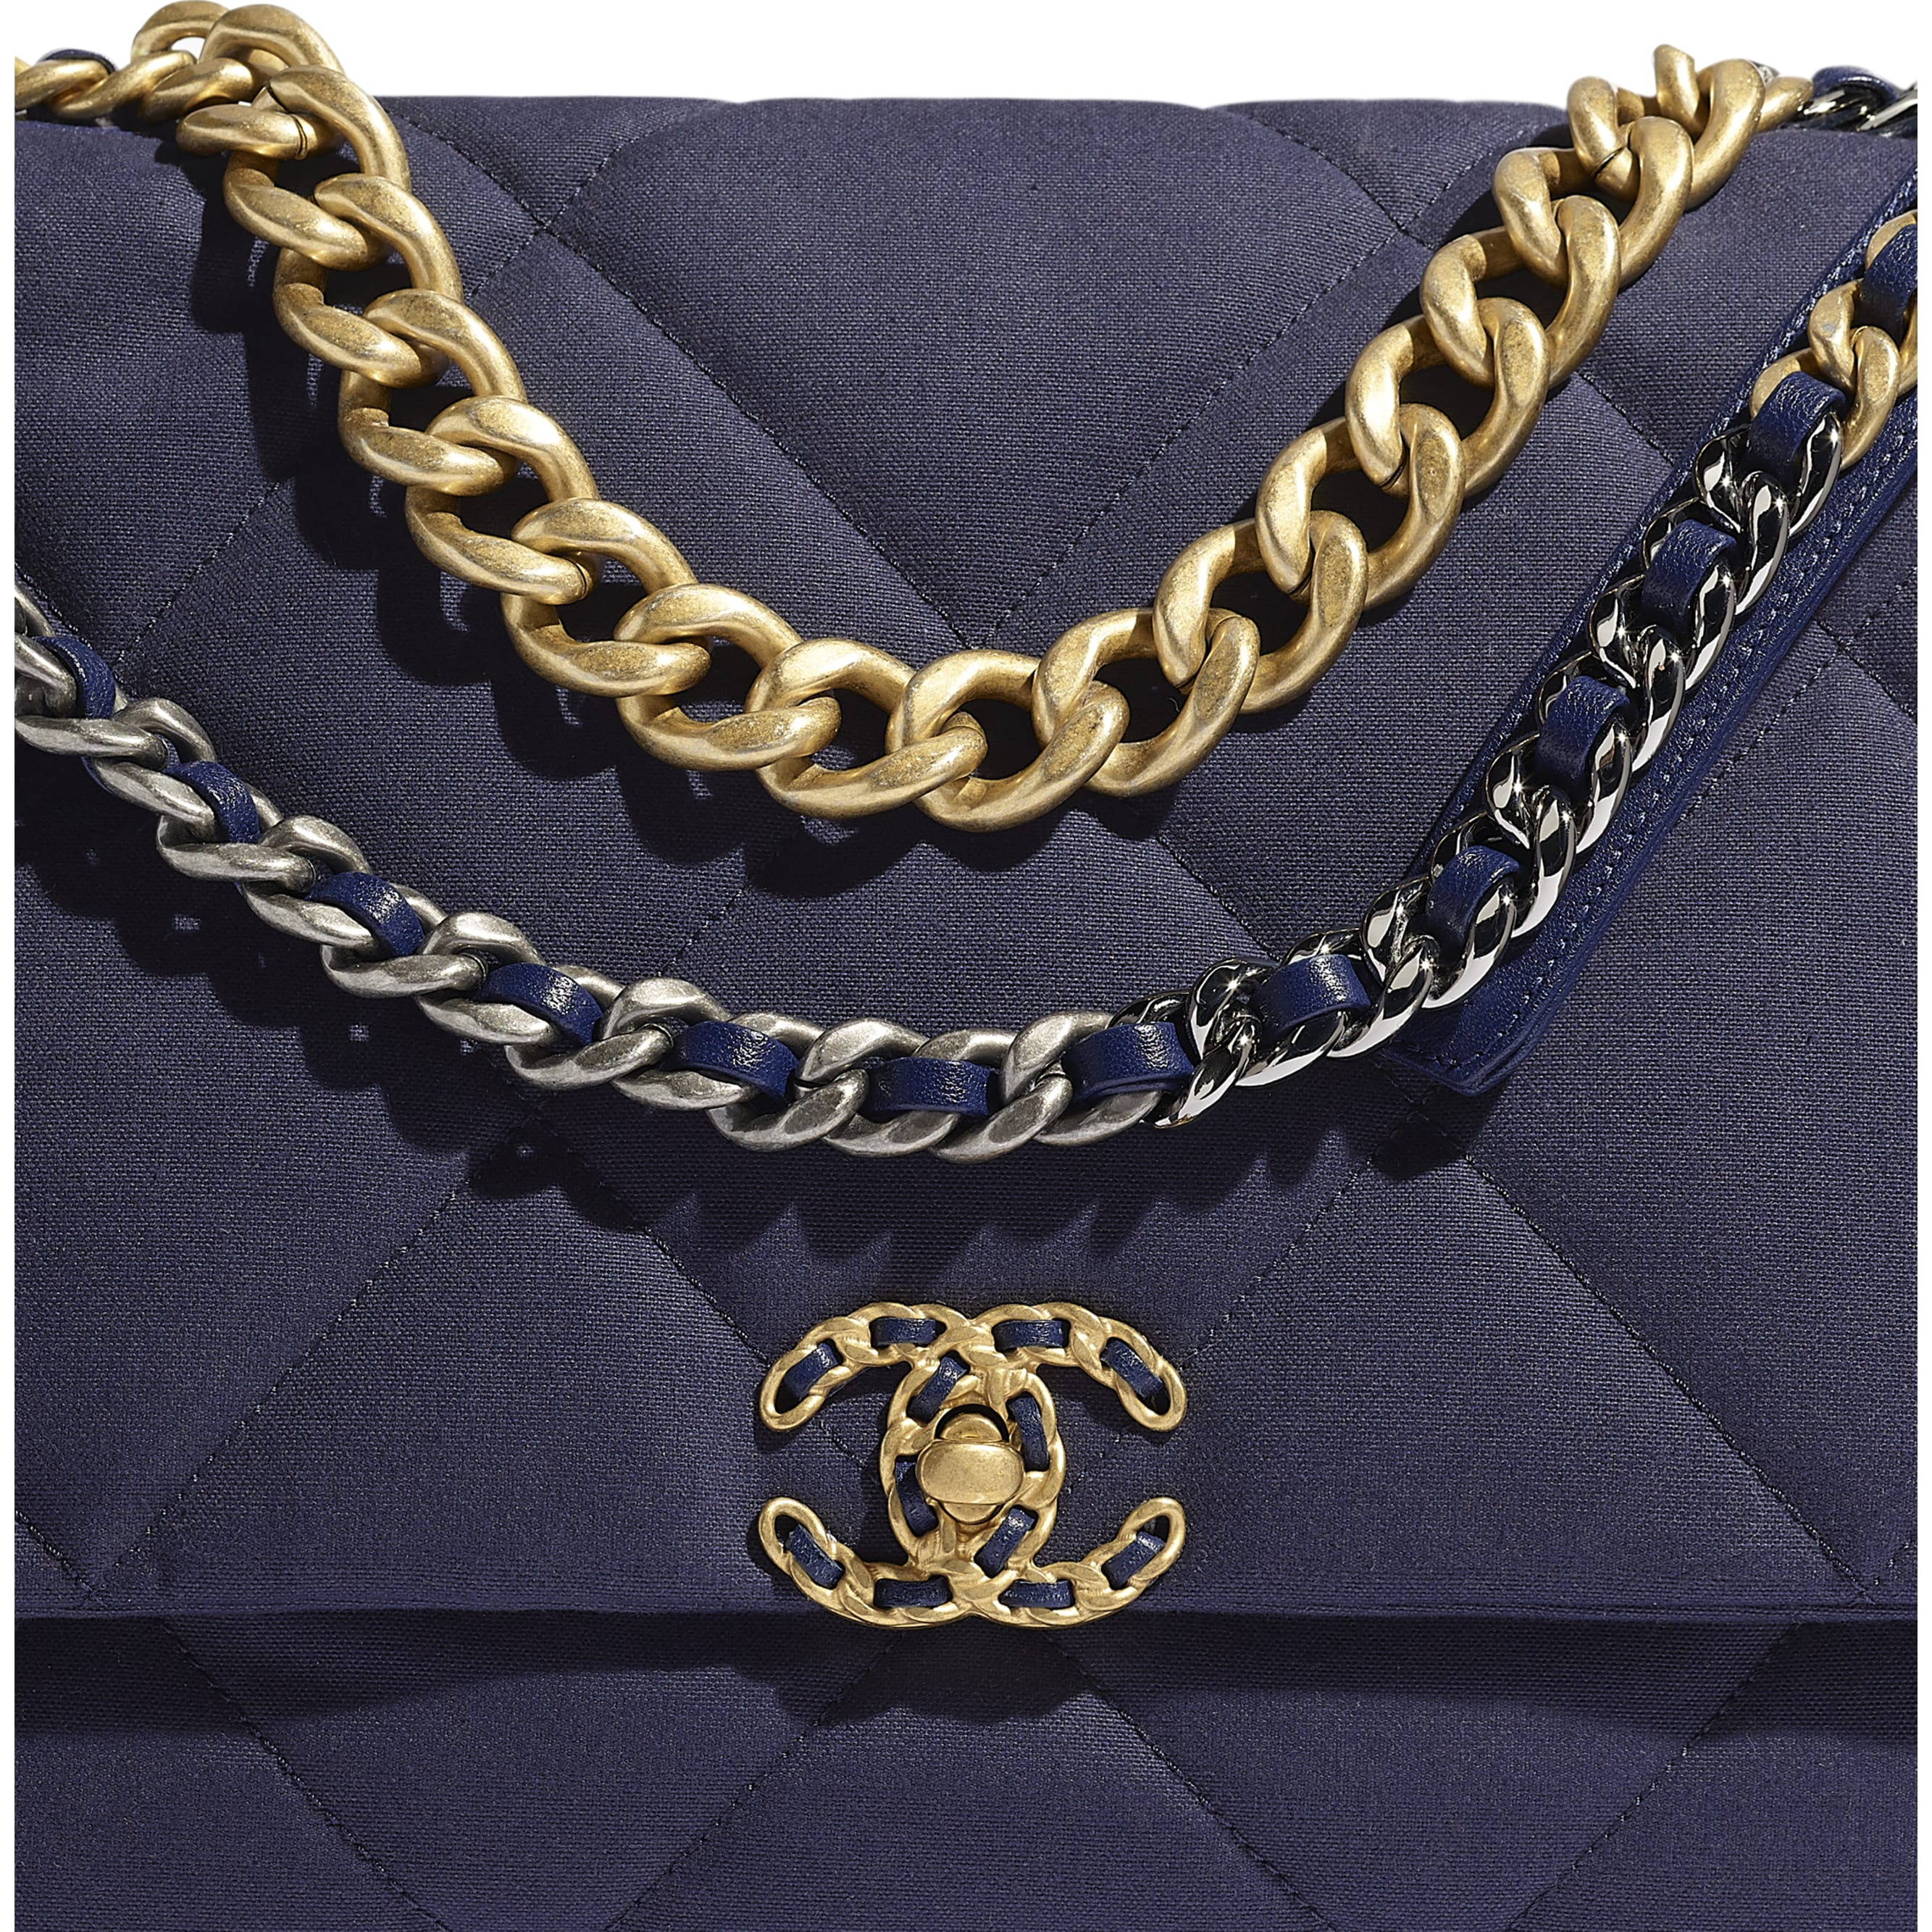 CHANEL 19 Maxi Flap Bag - Navy Blue - Cotton Canvas, Calfskin, Gold-Tone, Silver-Tone & Ruthenium-Finish Metal - Extra view - see standard sized version